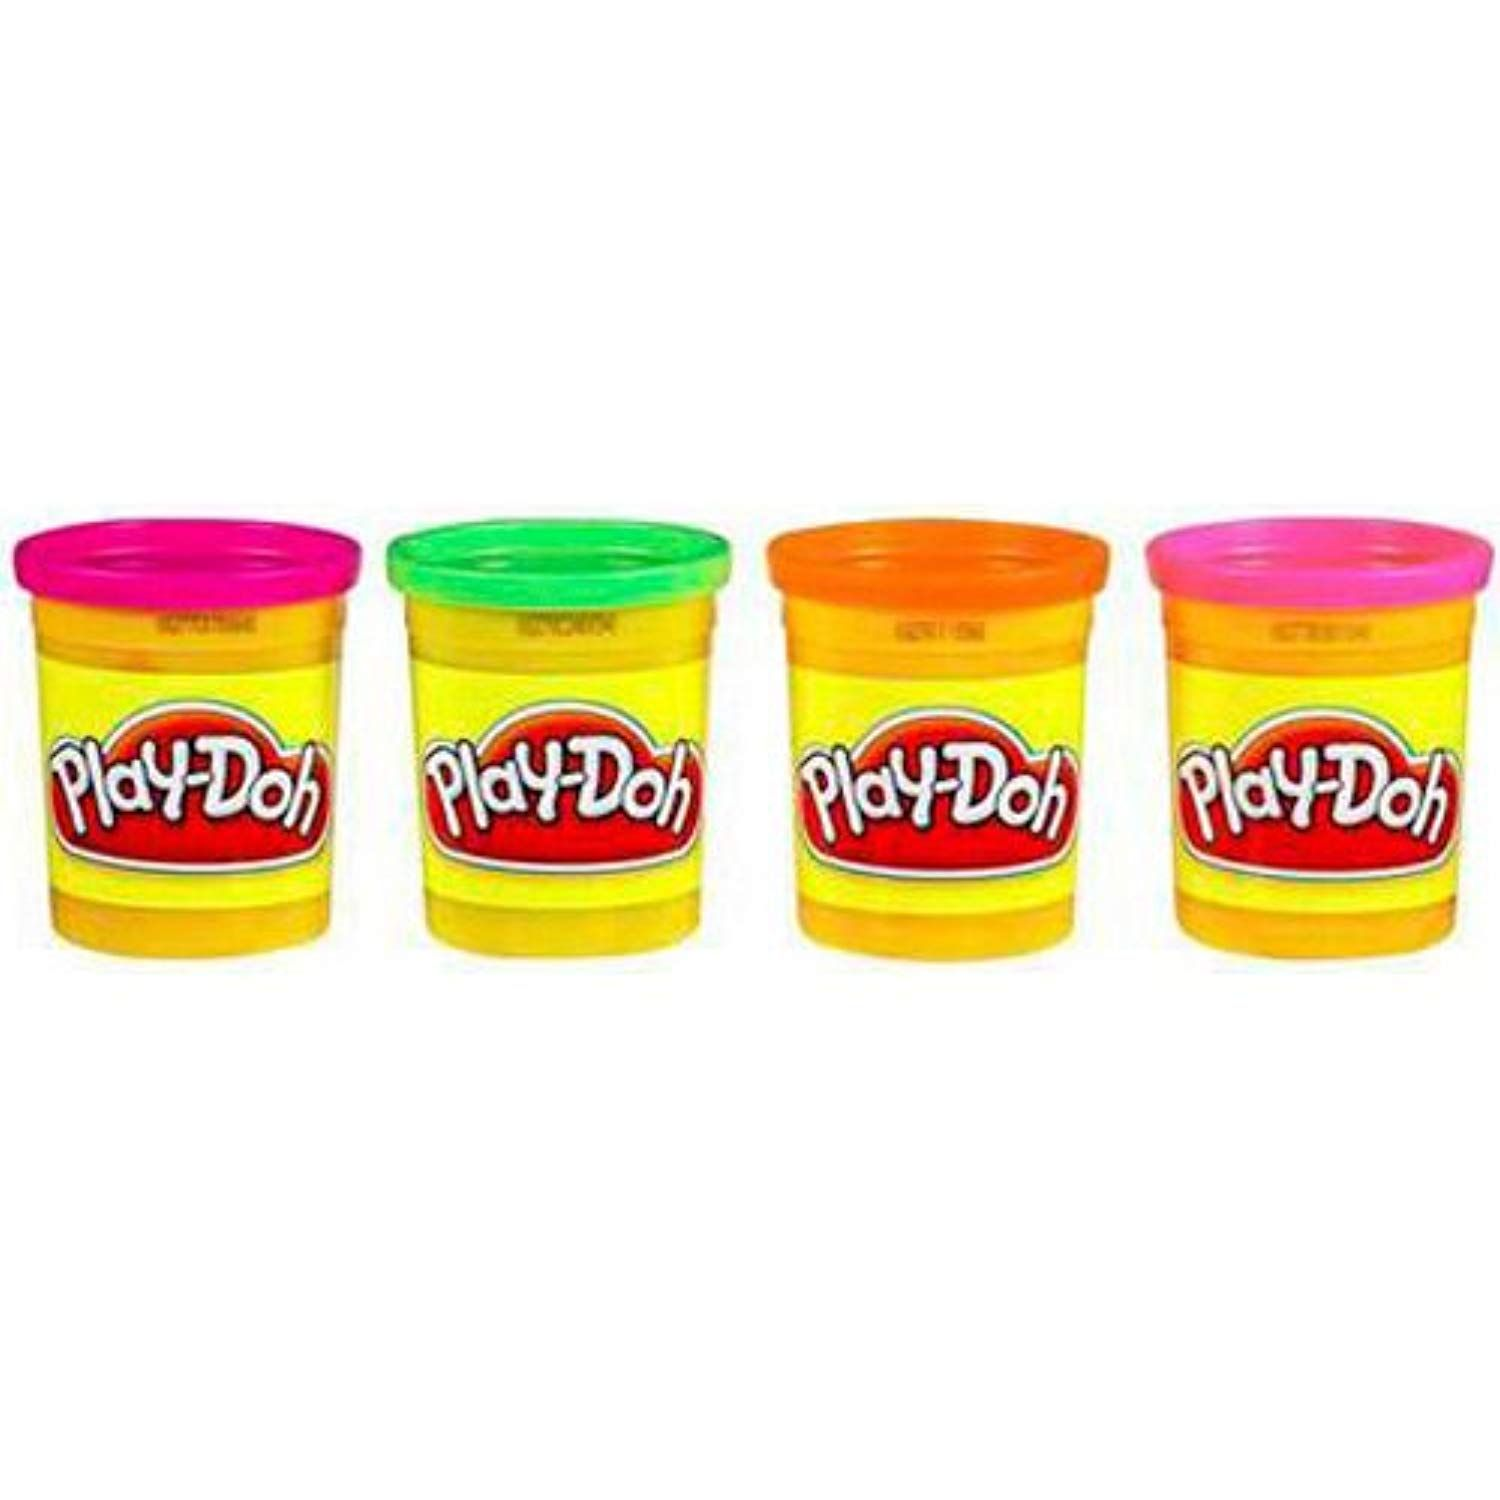 Play-Doh Your Choice Colors 4 Pack